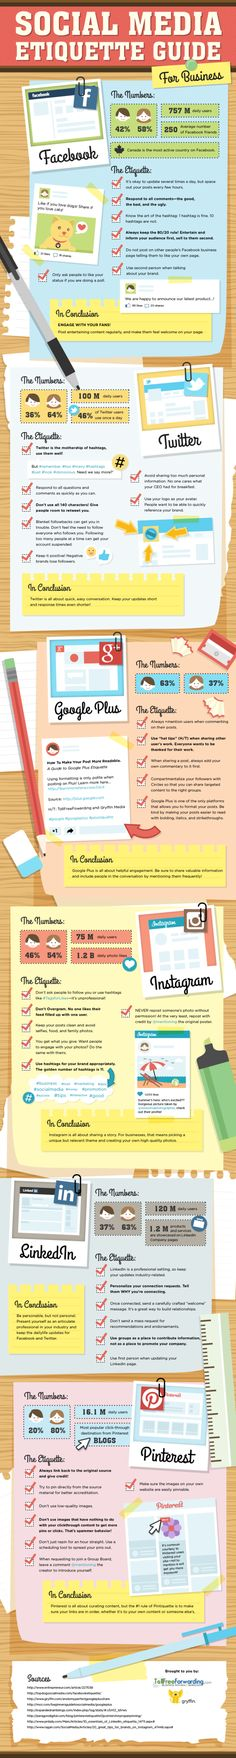 What Is The Proper Social Media Etiquette To Maintain A Well-Rounded Presence On The Top Social Networks? #infographic